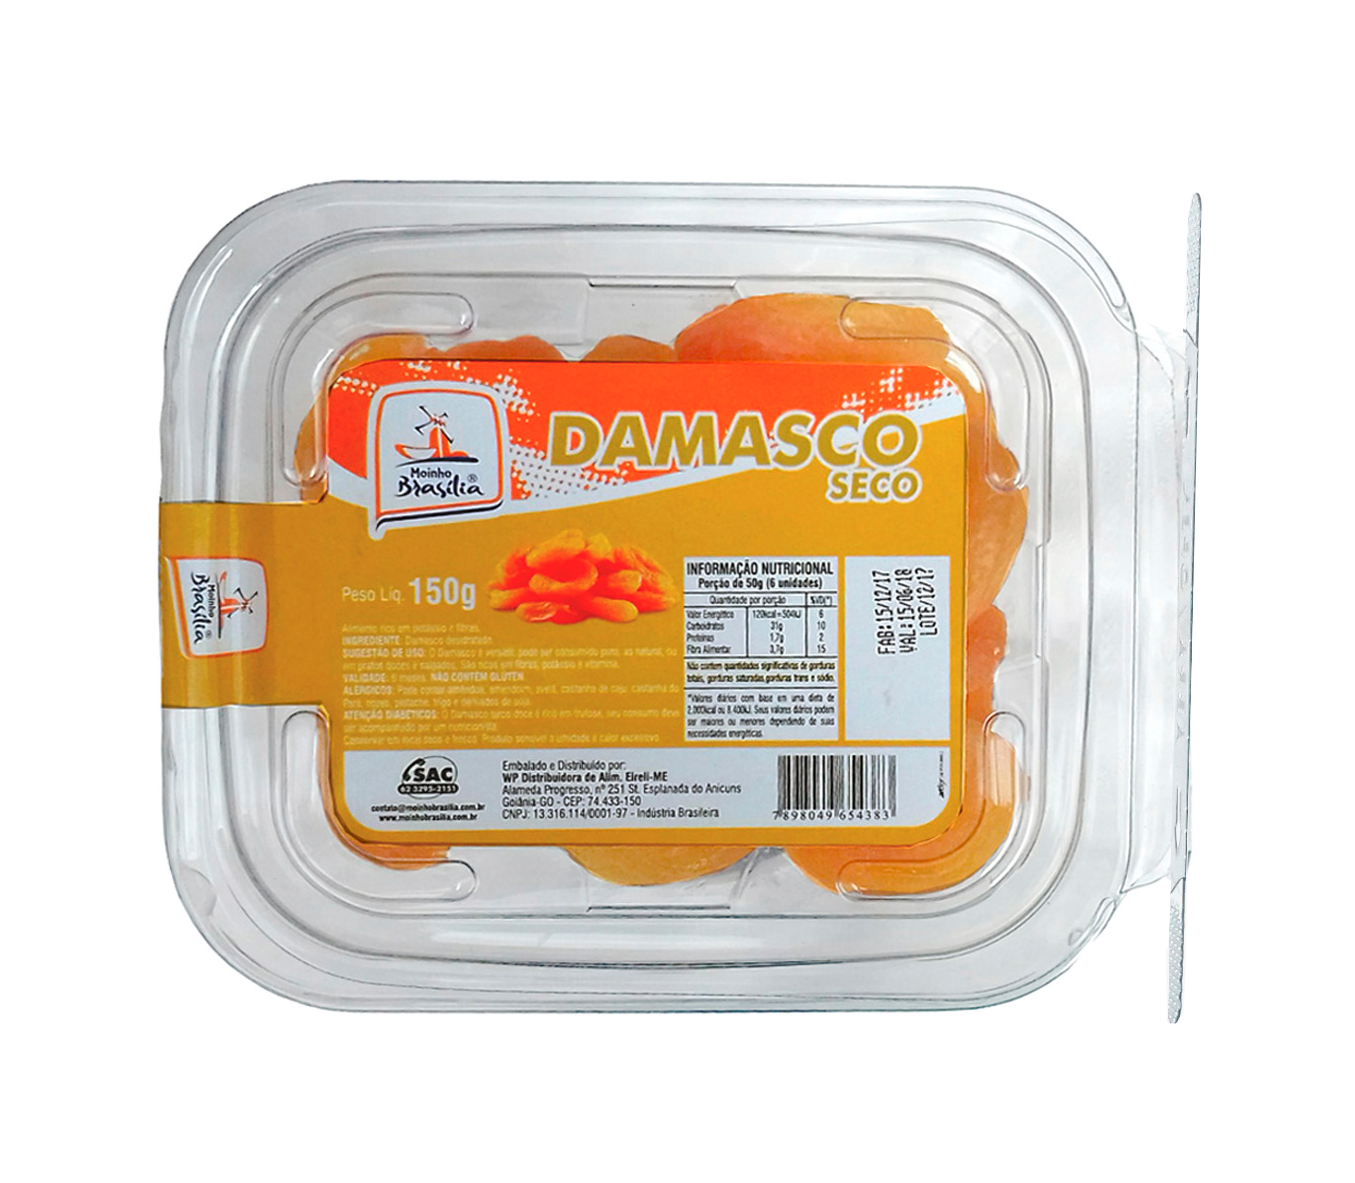 Damasco